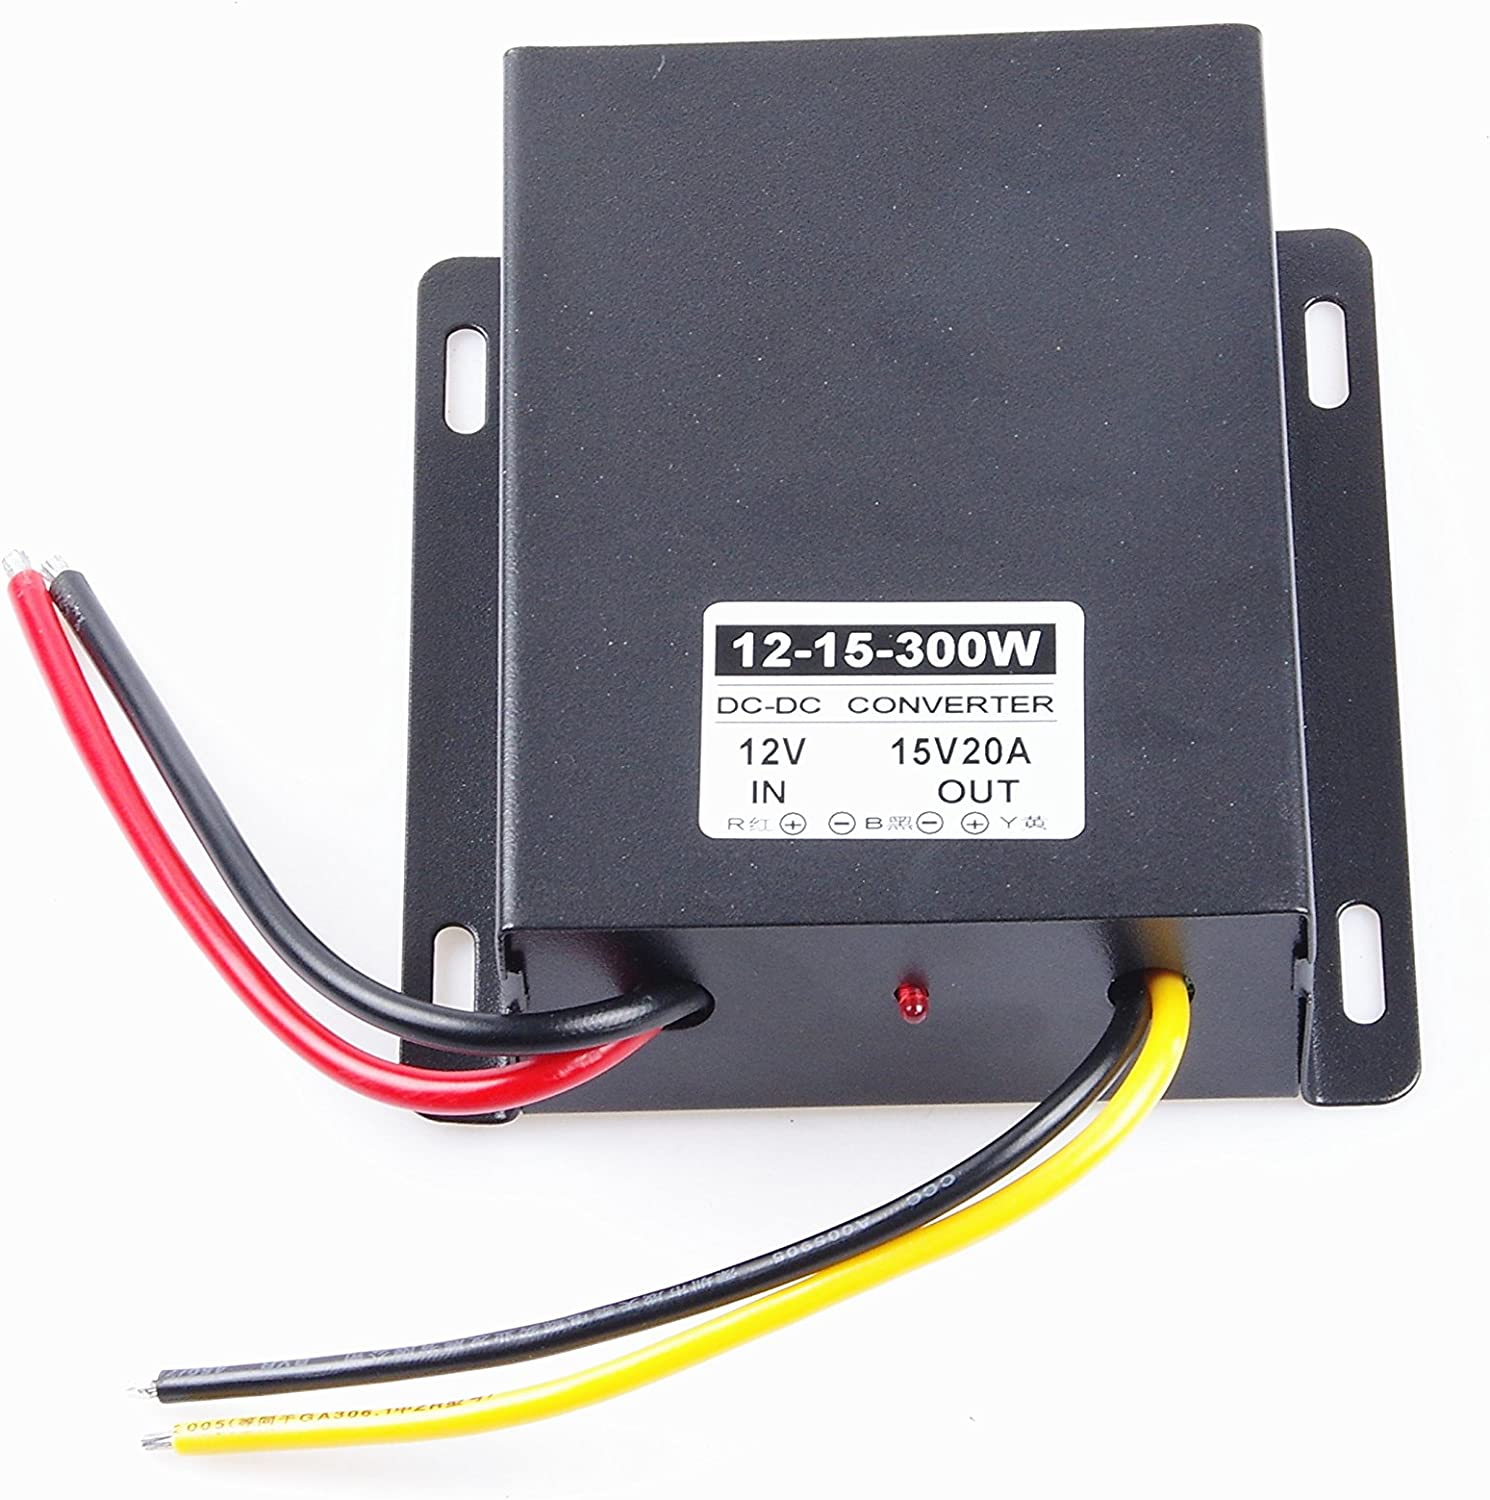 KNACRO 15V 20A 300W DC-DC Converter DC 12V (9-14V) Step Up to 15V 20A Power Supply (in DC 9-14V, Out 15V 20A)